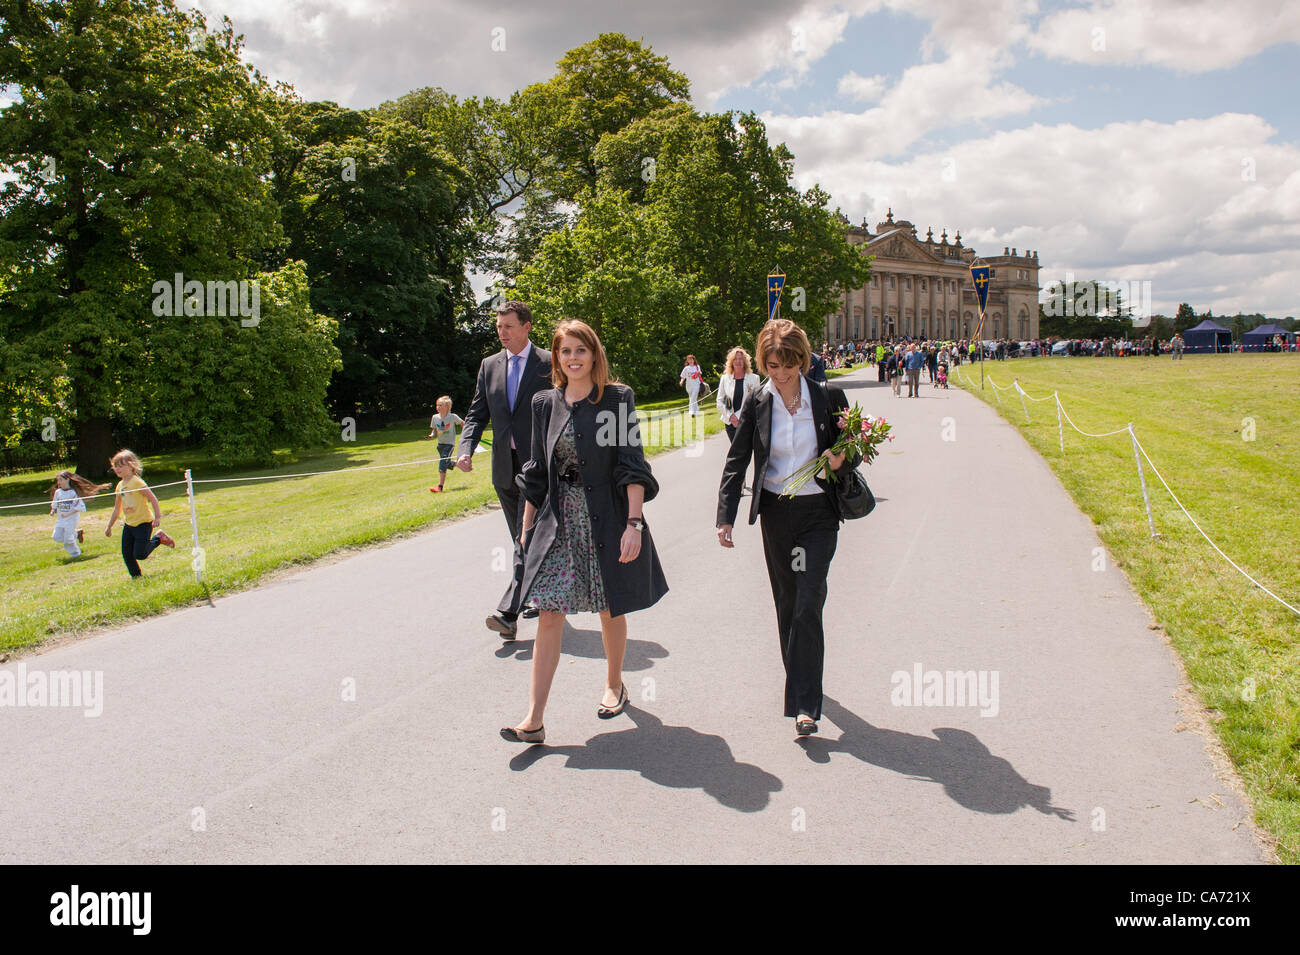 Smiling, happy Princess Beatrice (left) walks up the main drive of Harewood House after celebrating the arrival - Stock Image